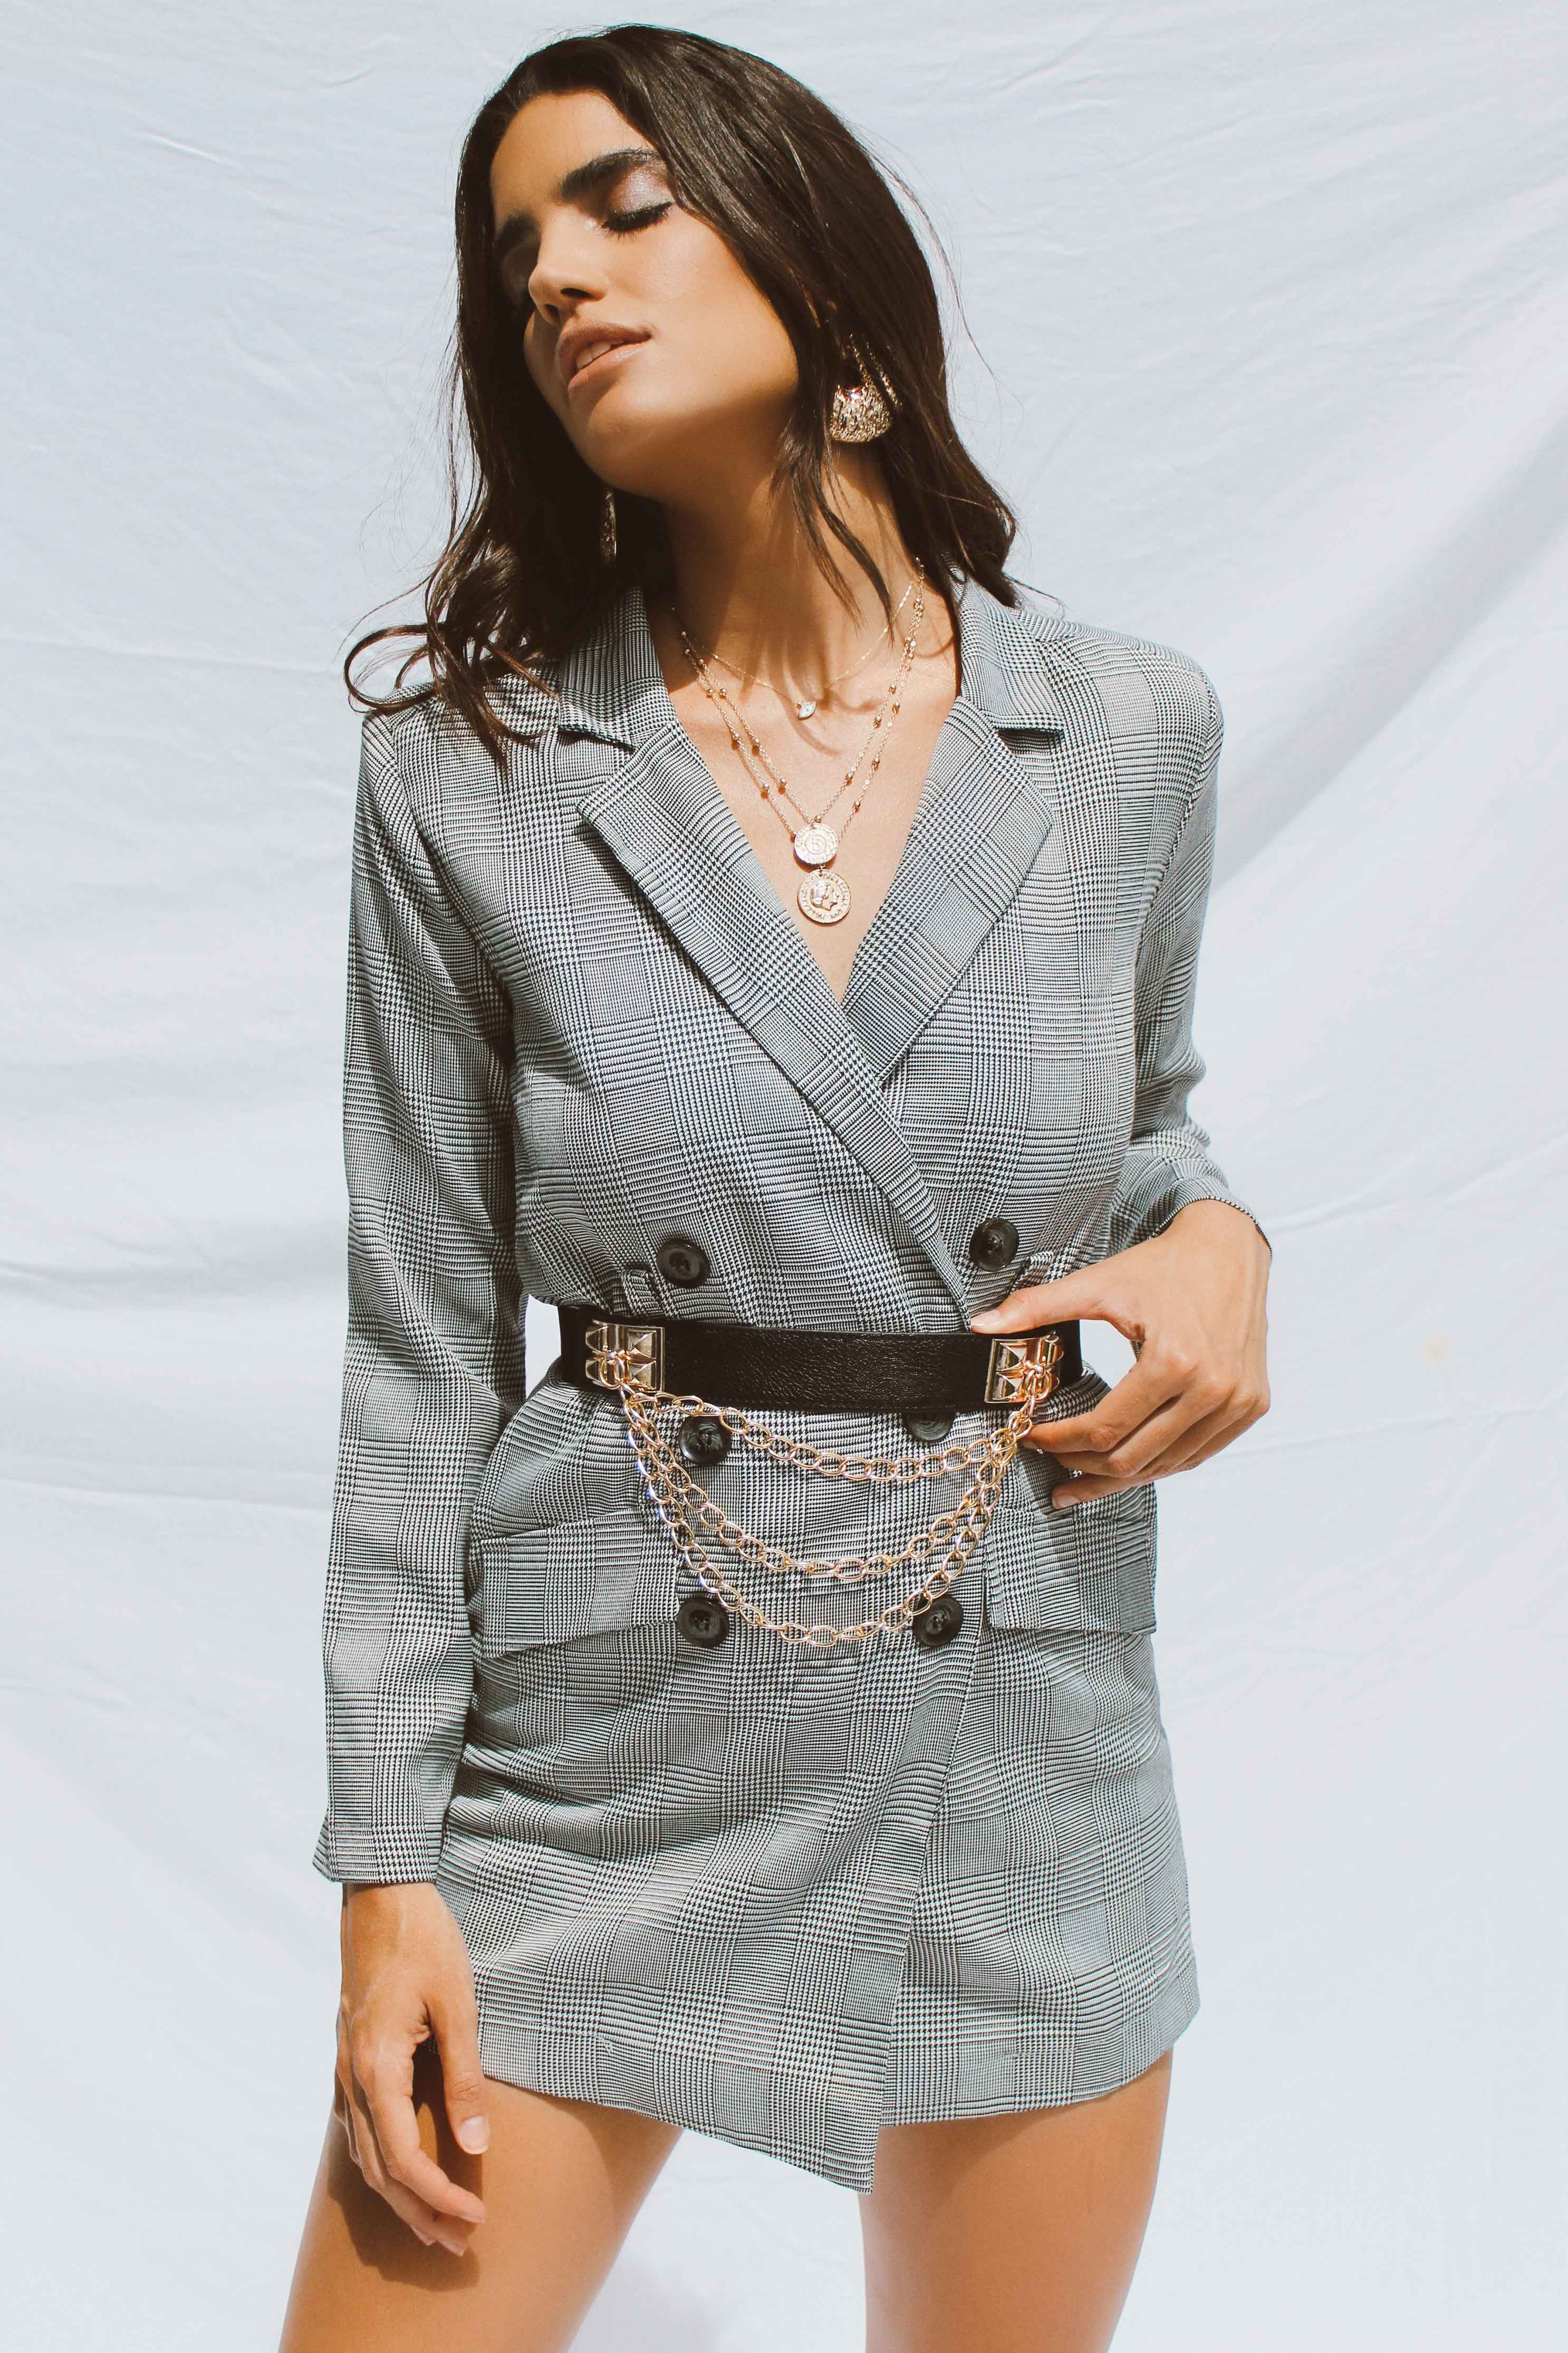 SIERRA PLAYSUIT BLAZER - Chic Le Frique